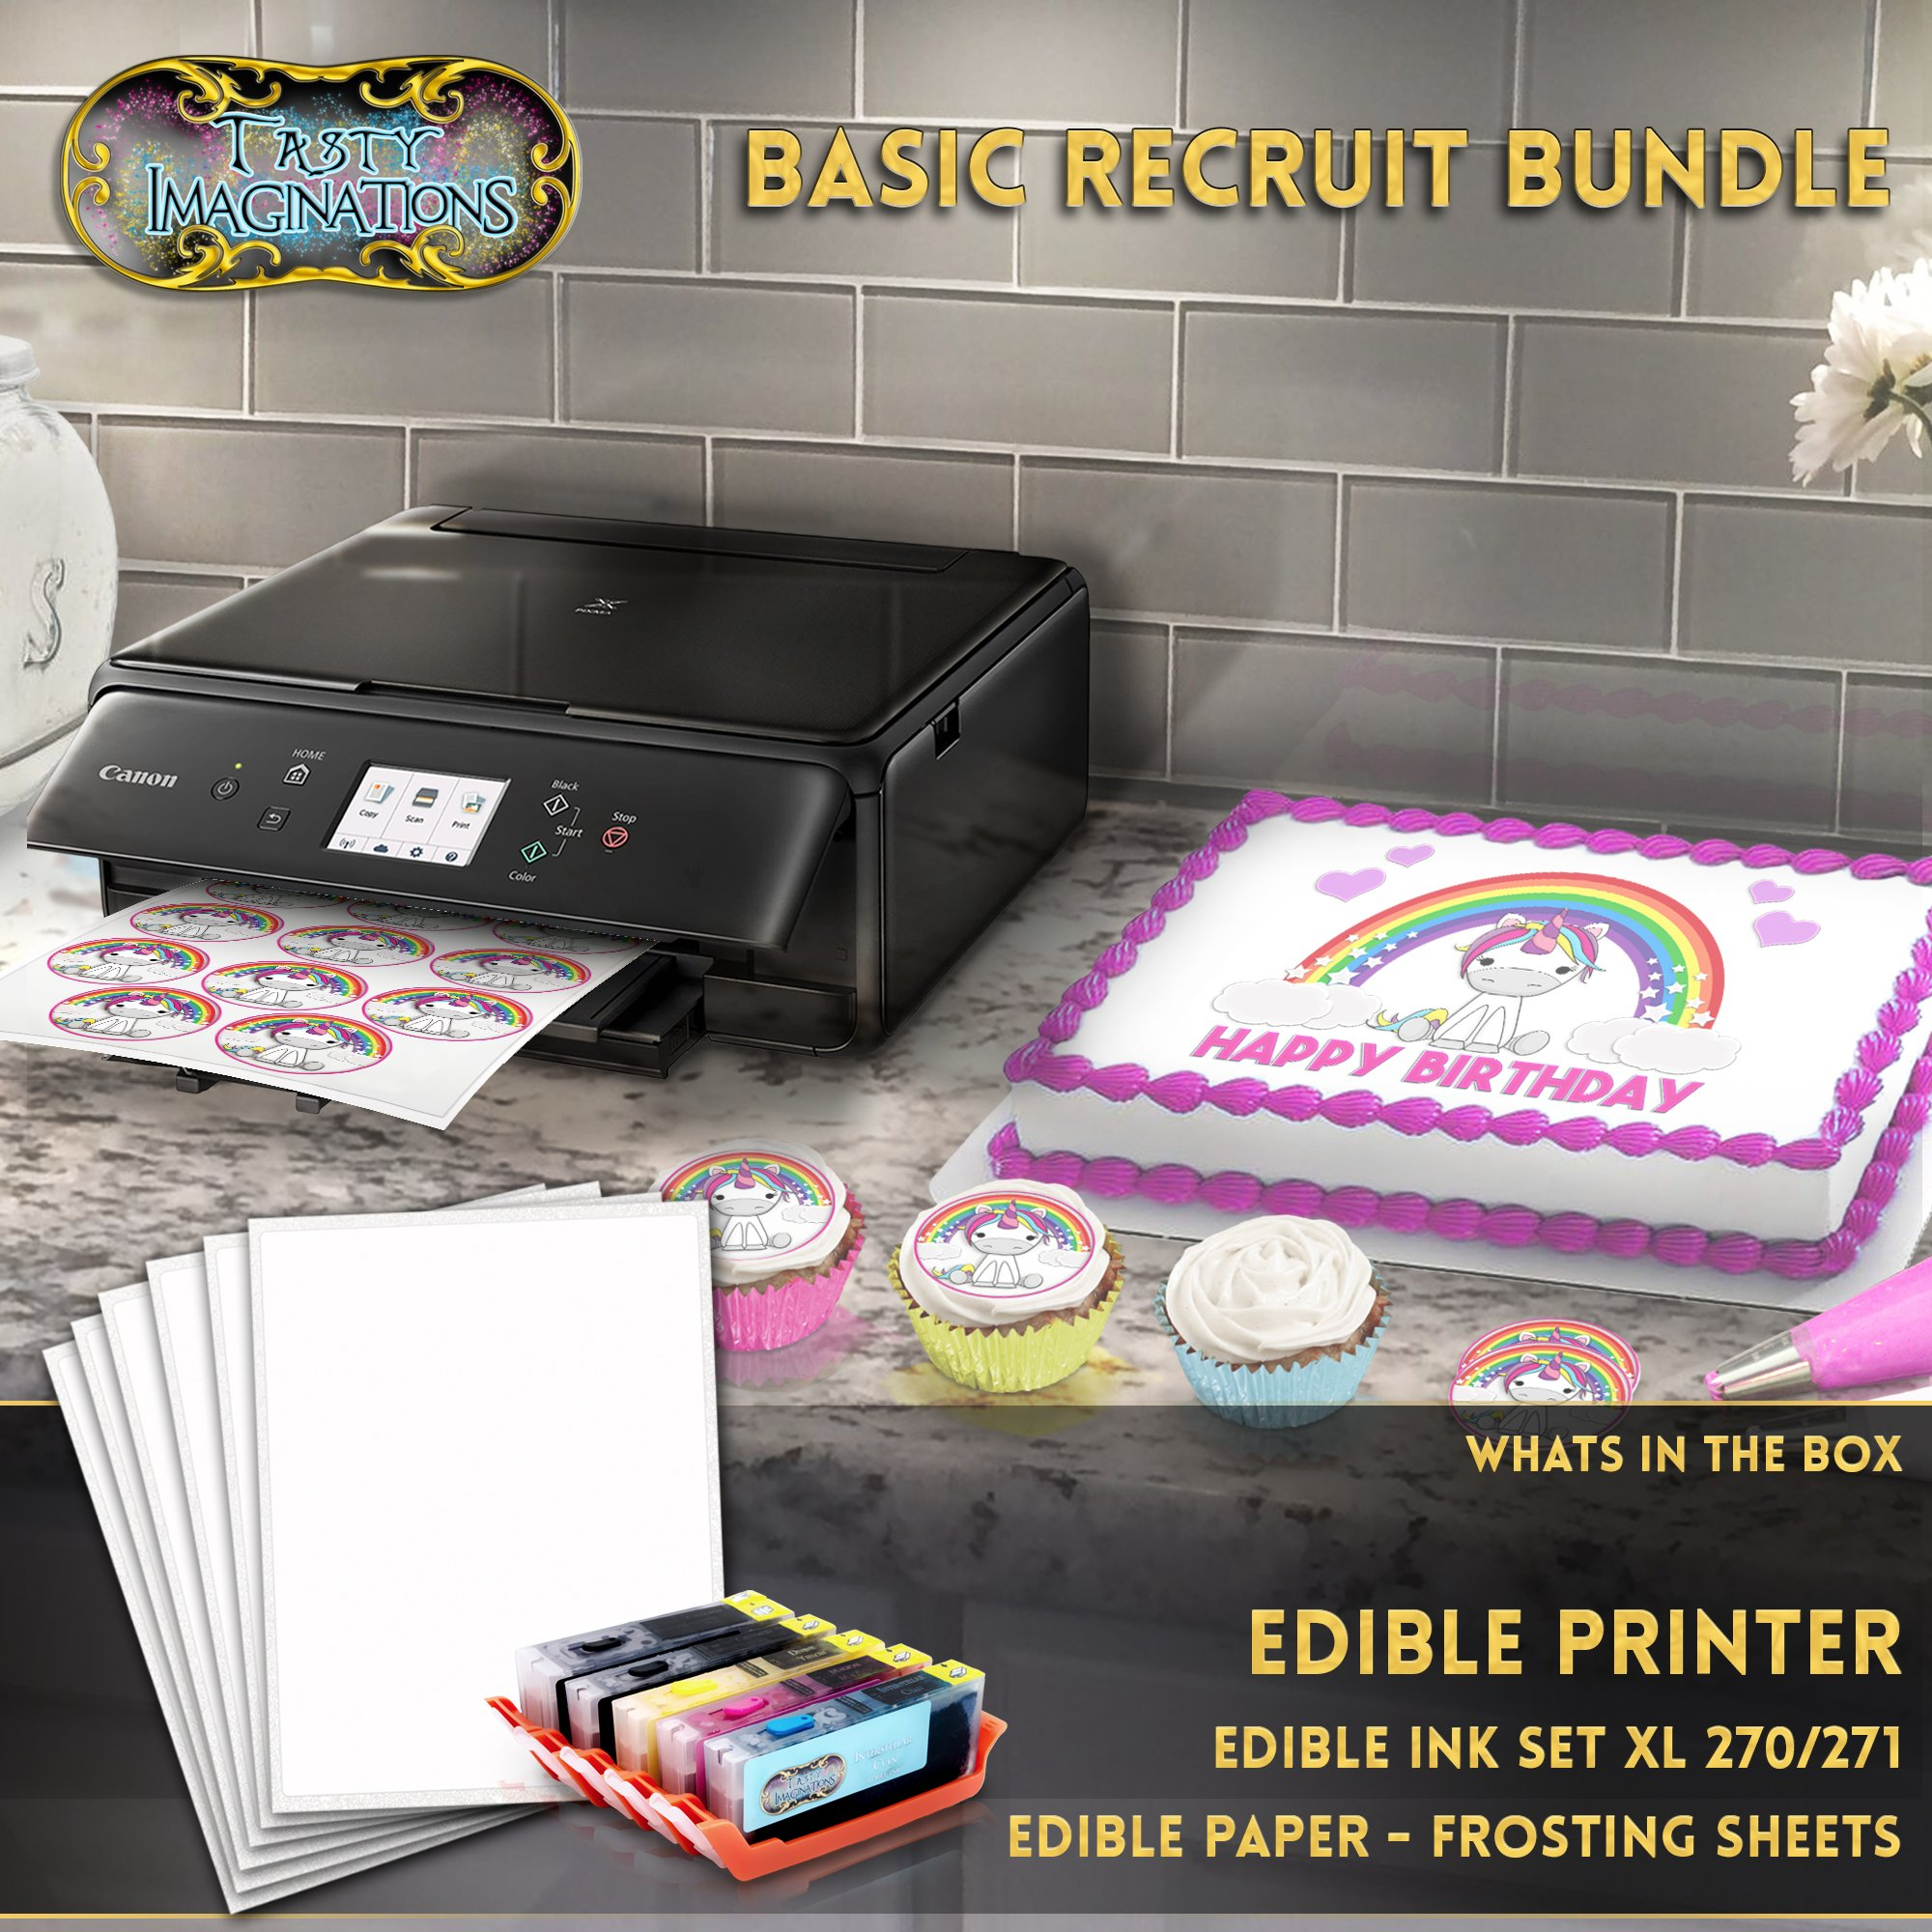 Edible Printer Bundle - Includes XL Edible Ink Cartridges and Frosting Sheets - Basic Recruit Package